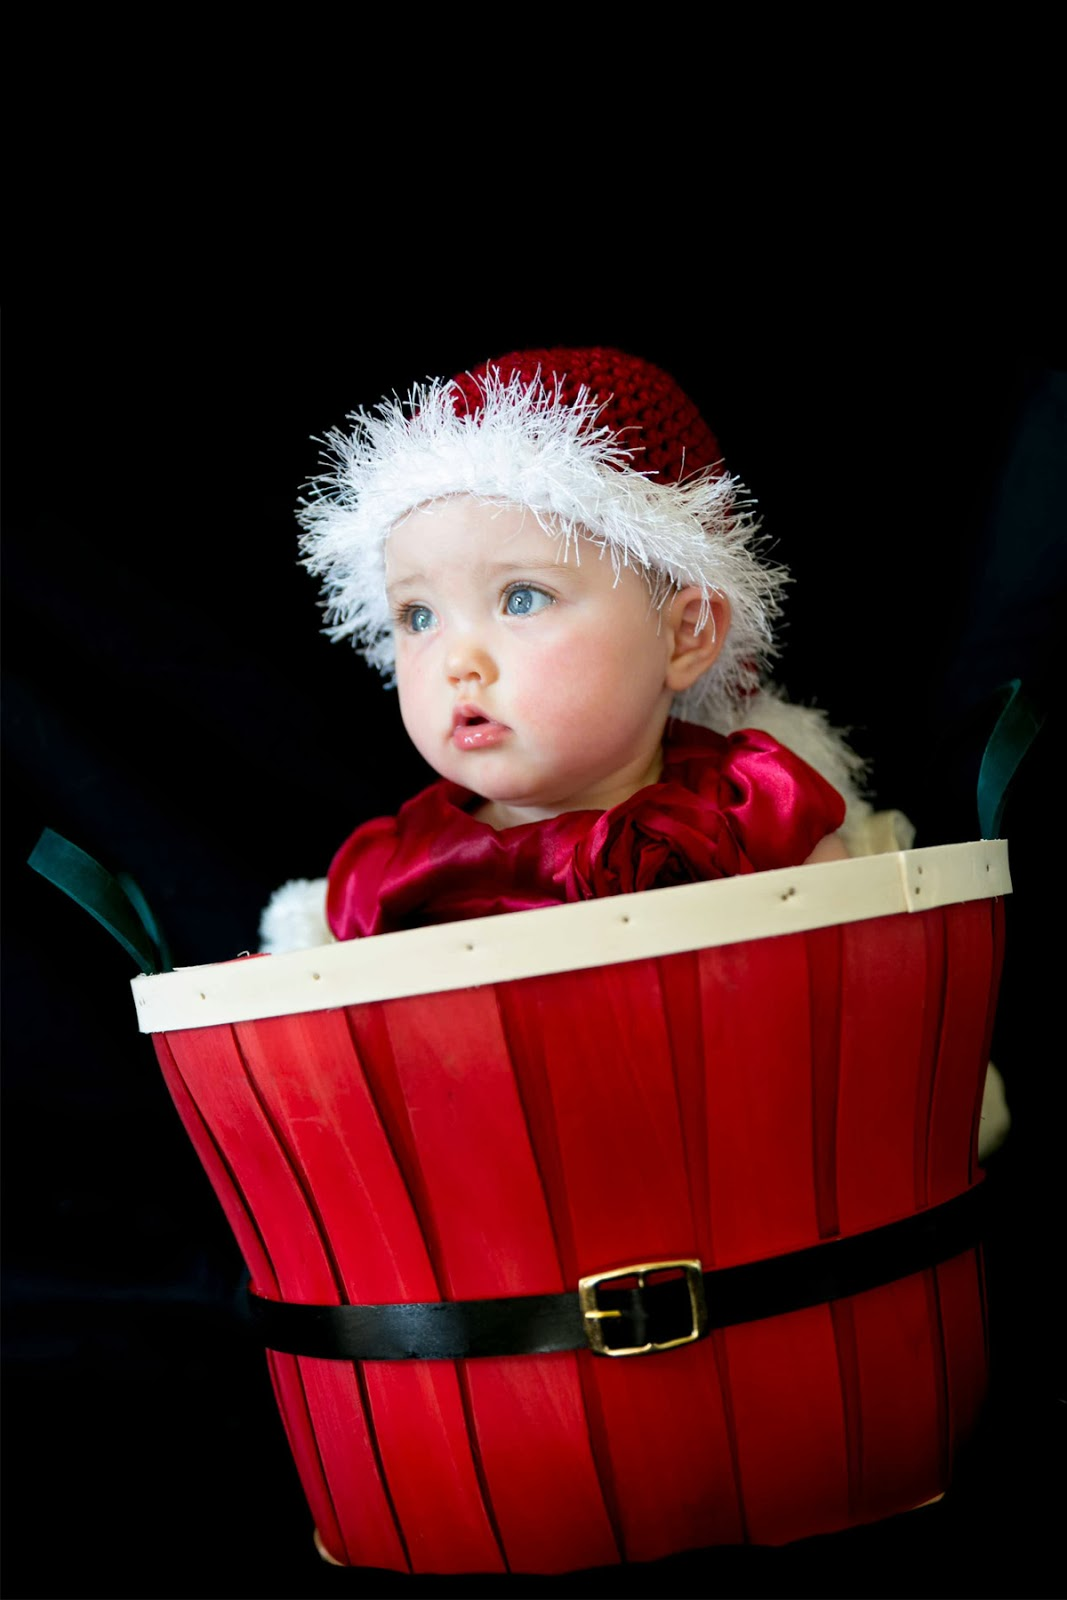 Christmas Babies Hd Wallpapers Hd Wallpapers High